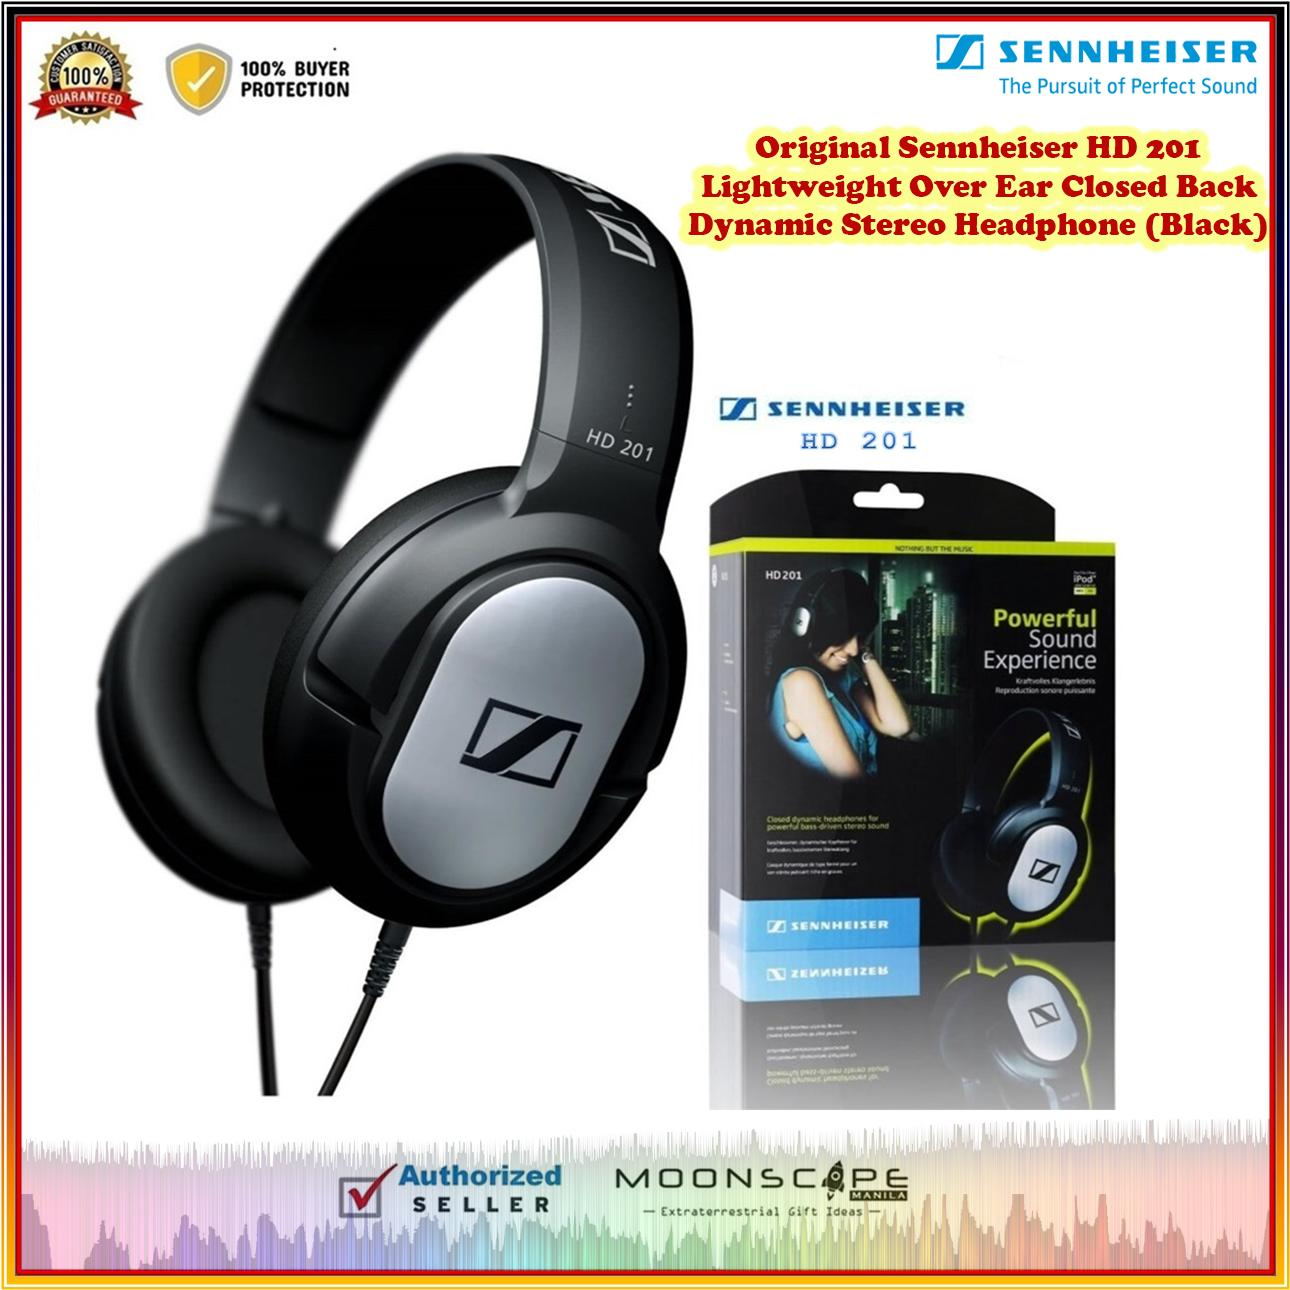 8f2c3d22fdf Original Sennheiser HD 201 Lightweight Over Ear Closed Back Dynamic Stereo  Headphone (Black)